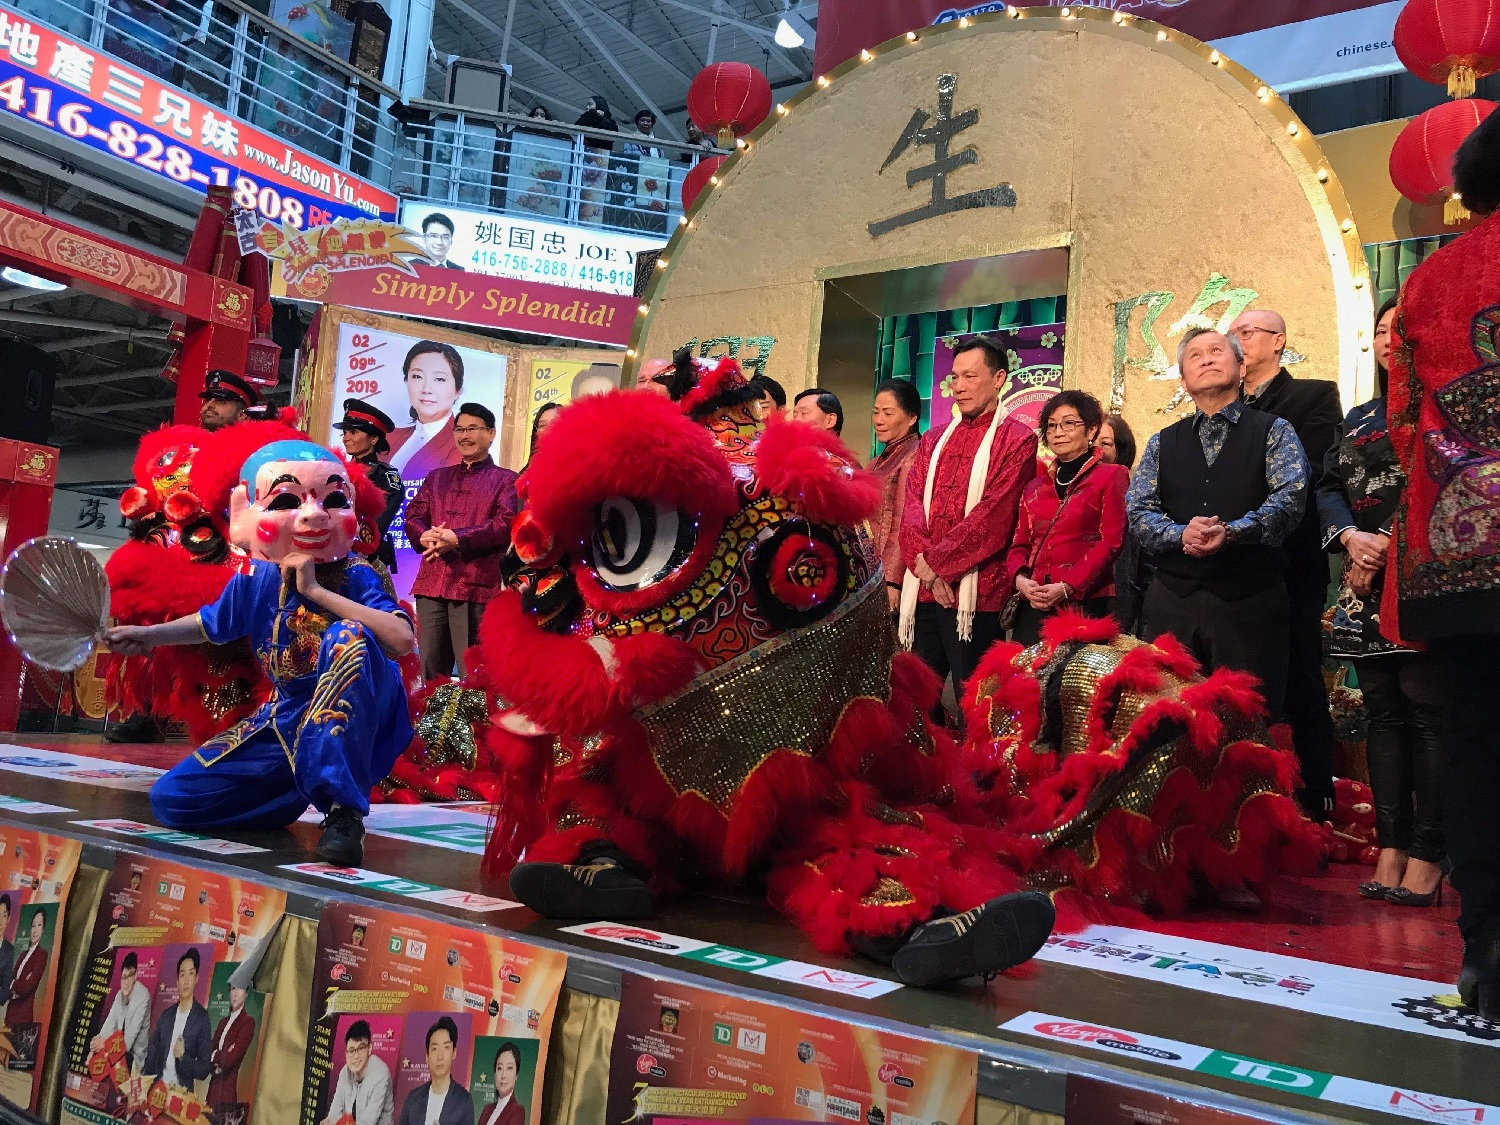 wayland-li-wushu-pacific-mall-chinese-new-year-2019-12.jpg